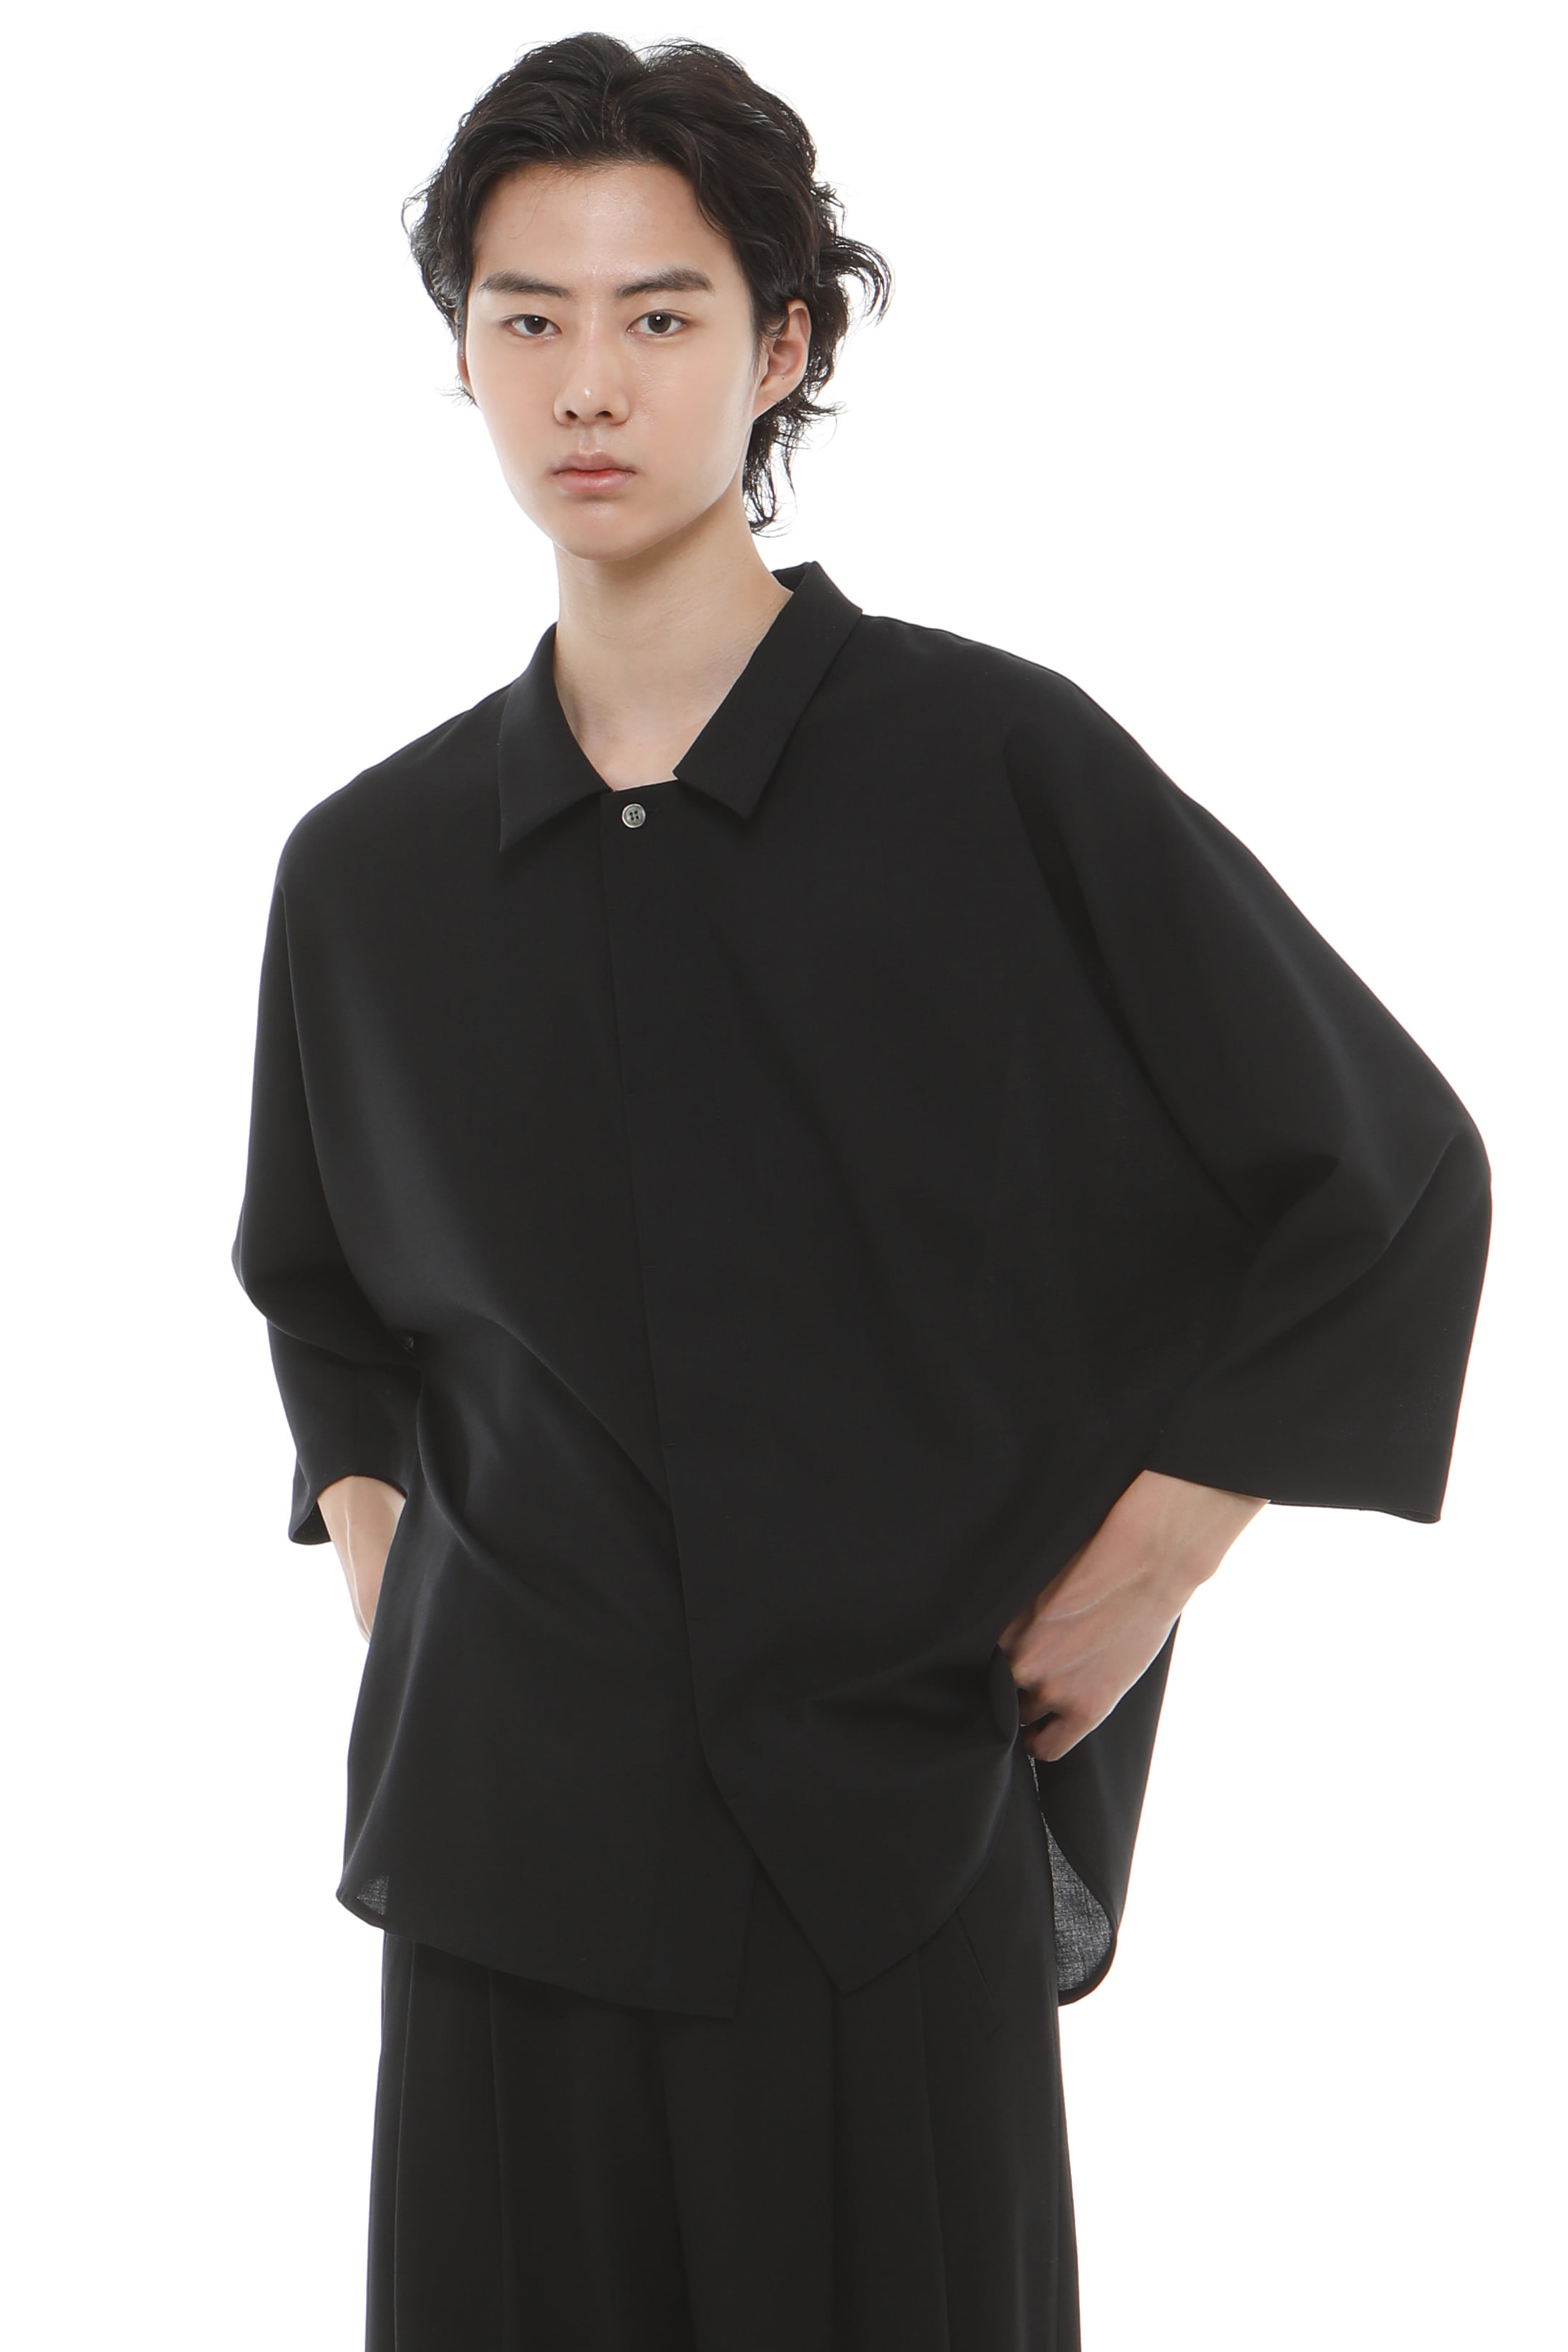 S008 / Summer Wool Layered Black Shirts